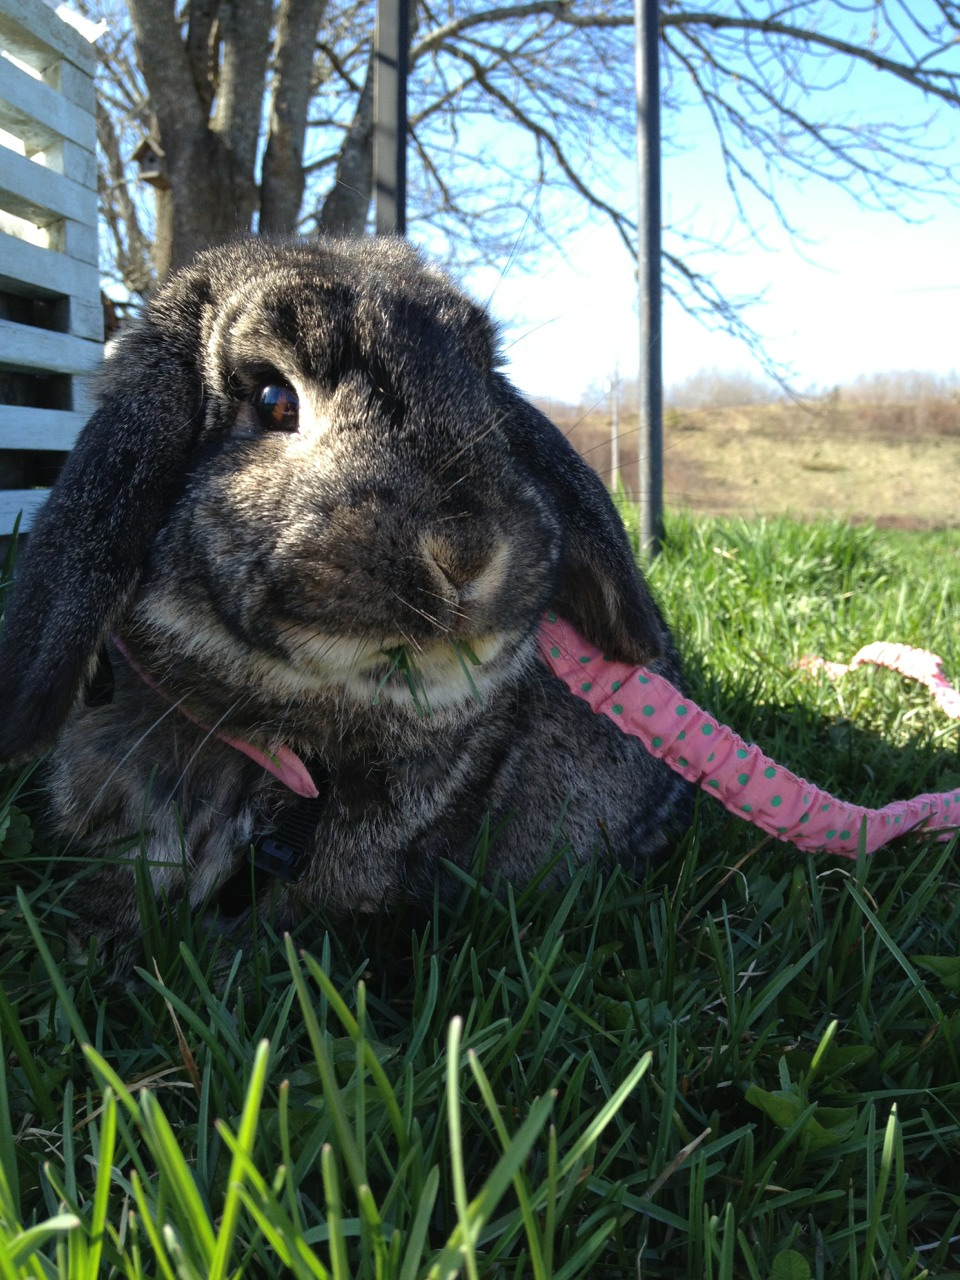 Bunny Has a Mouthful of Grass